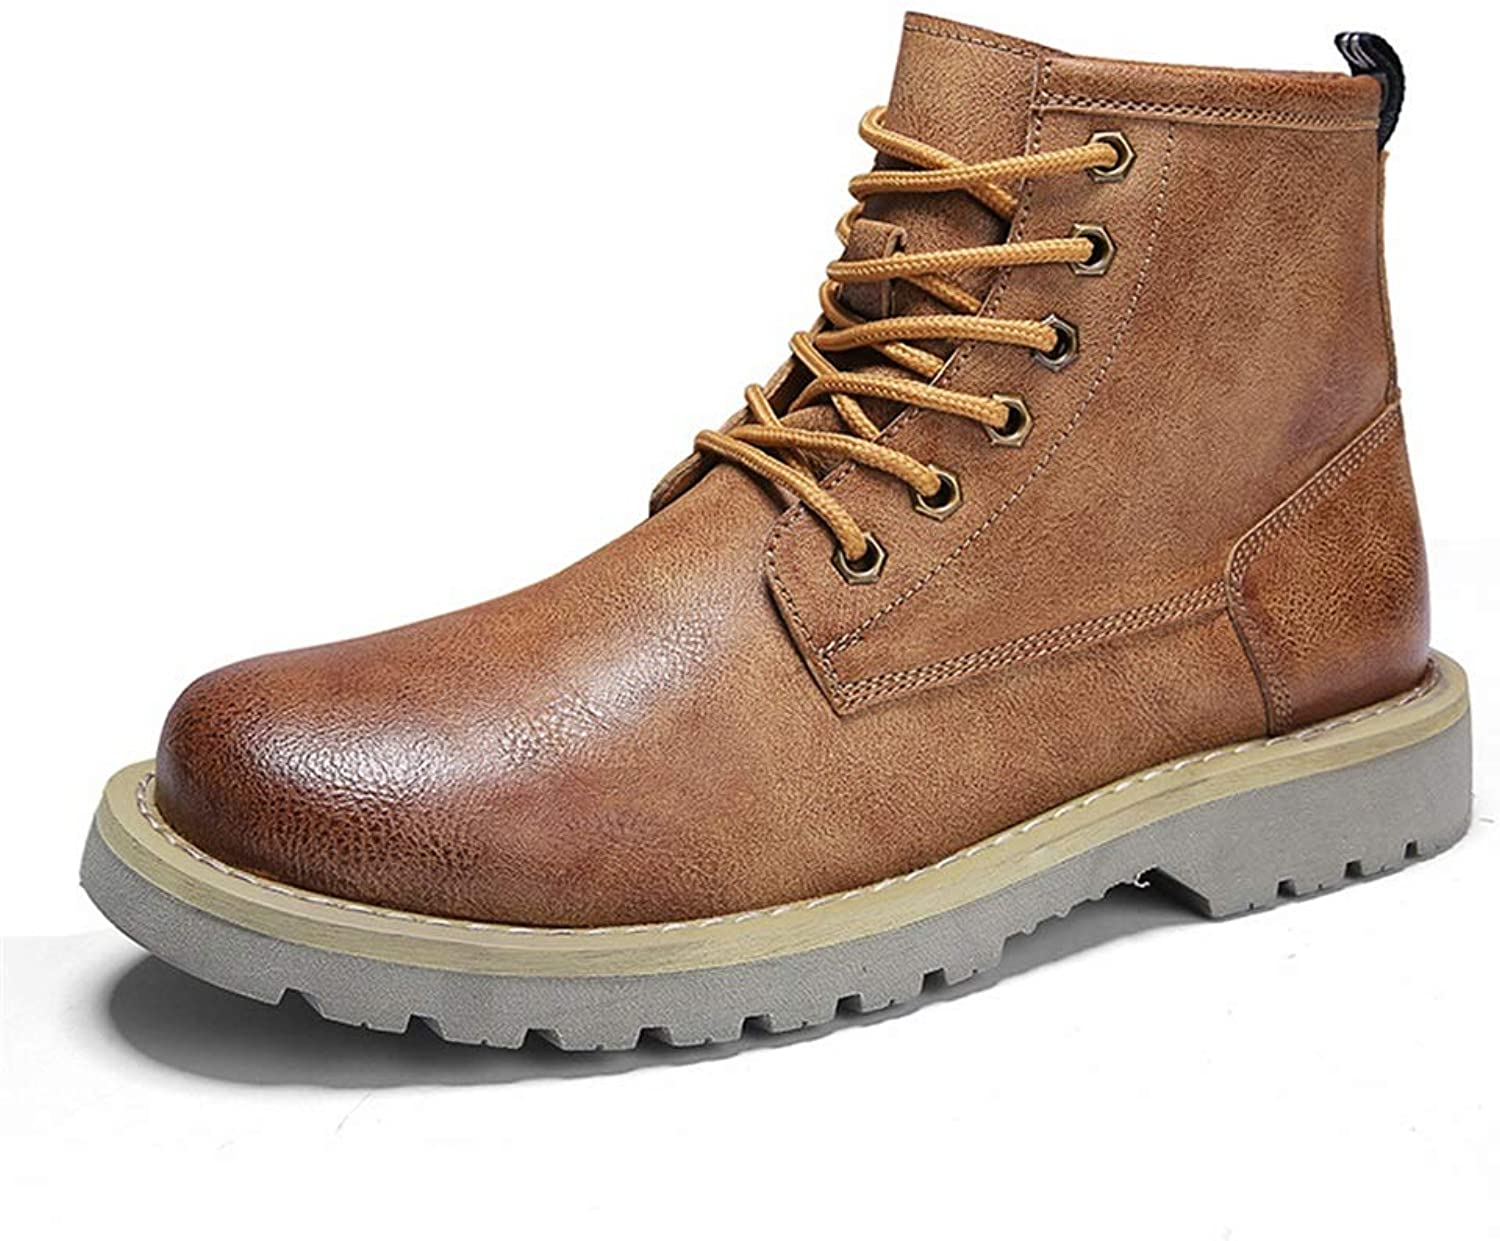 Men's shoes Men's Boots, Fall Winter Tooling Martin Boots Men's Ankle Boots High-top Microfiber Leather Outdoor Leather Boots Men's Fashion Boots (color   A, Size   40)